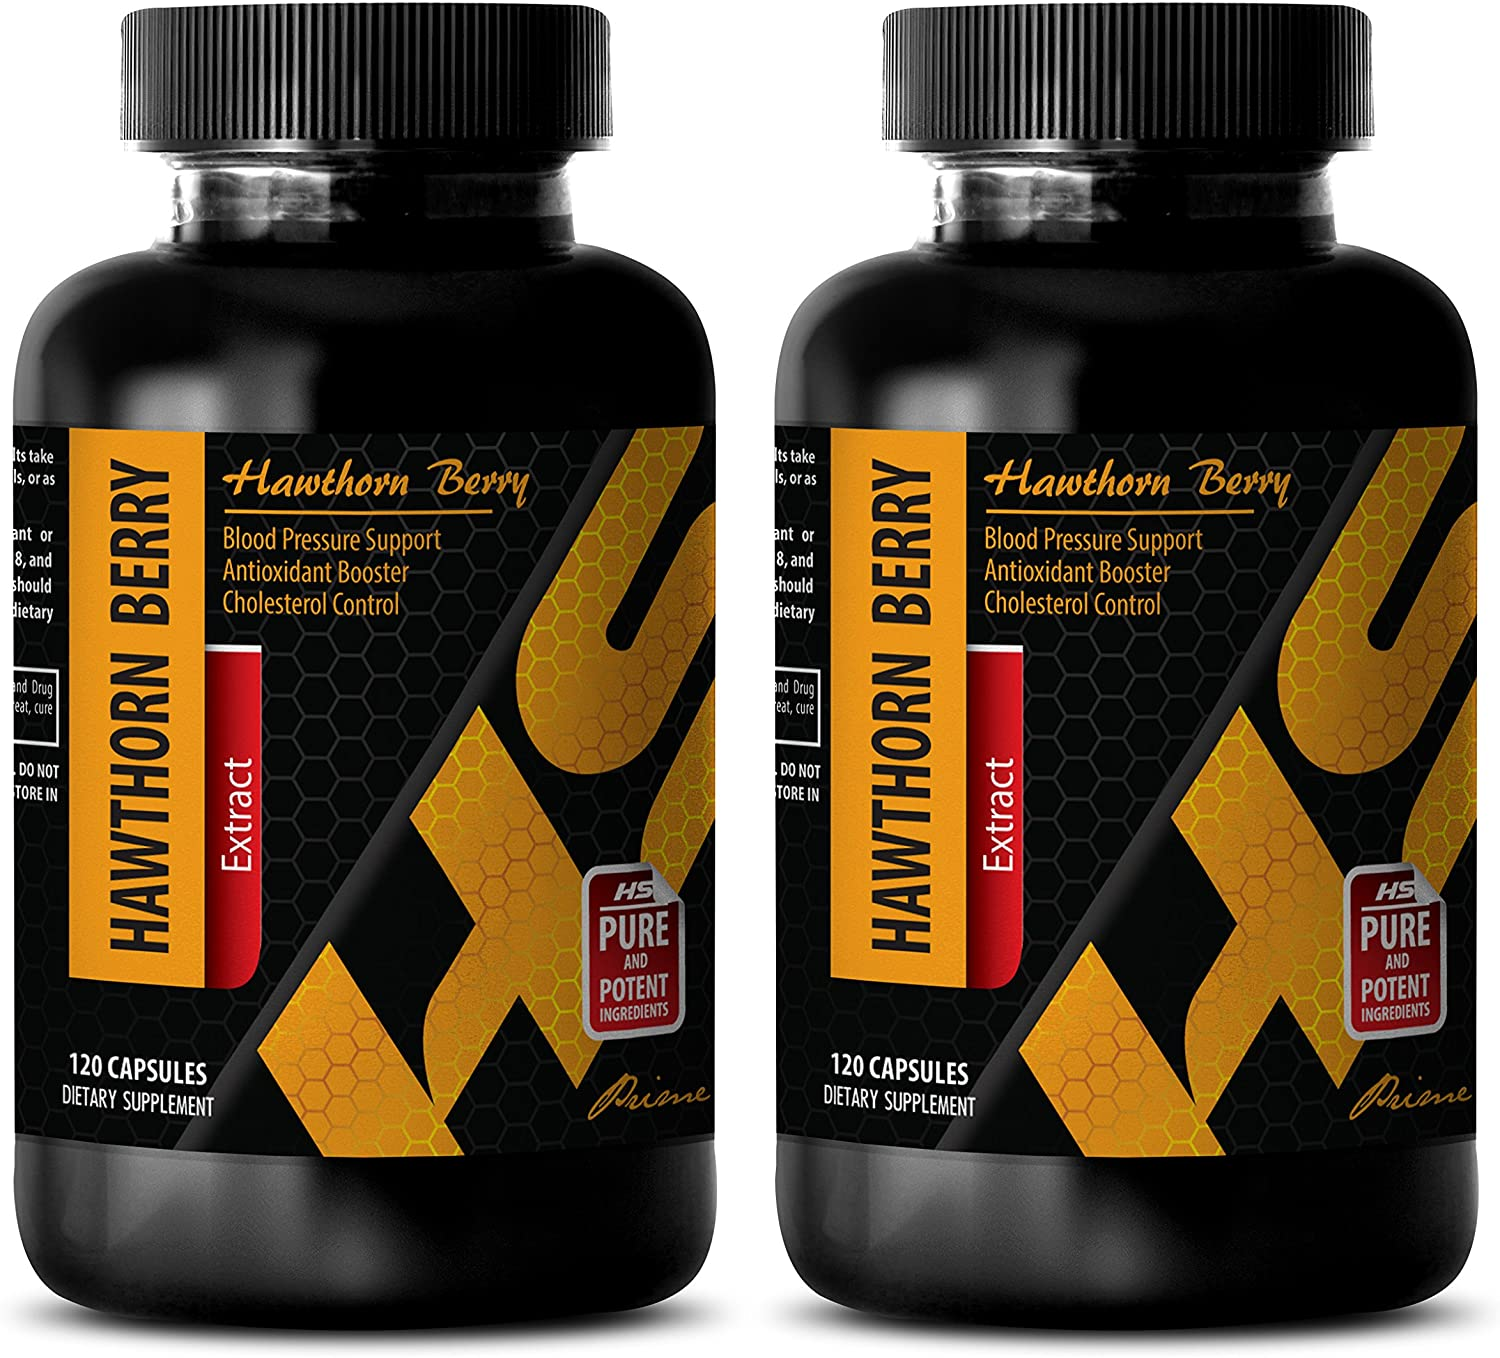 antioxidant Boost - Hawthorn Berry Extract 665 Mg - Dietary Supplements - Hawthorn Capsules - 2 Bottles (240 Capsules)